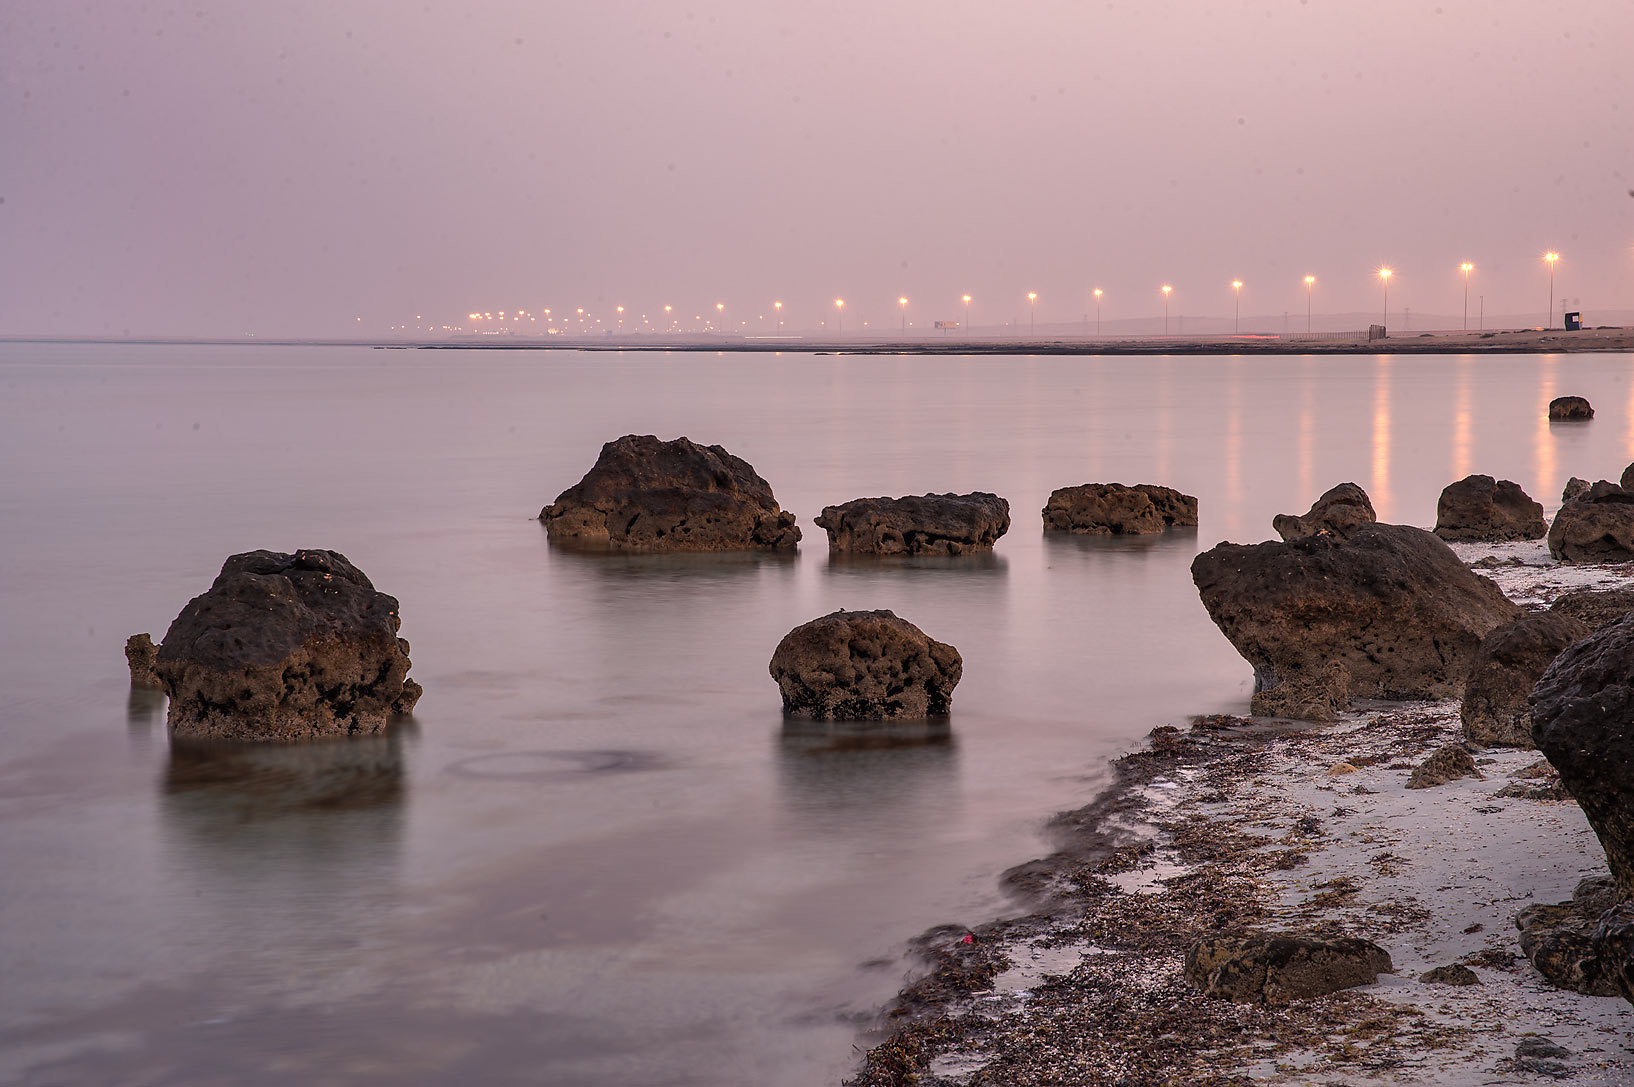 Rocks on a beach in Abu Samra, near Salwa Rd.. Qatar